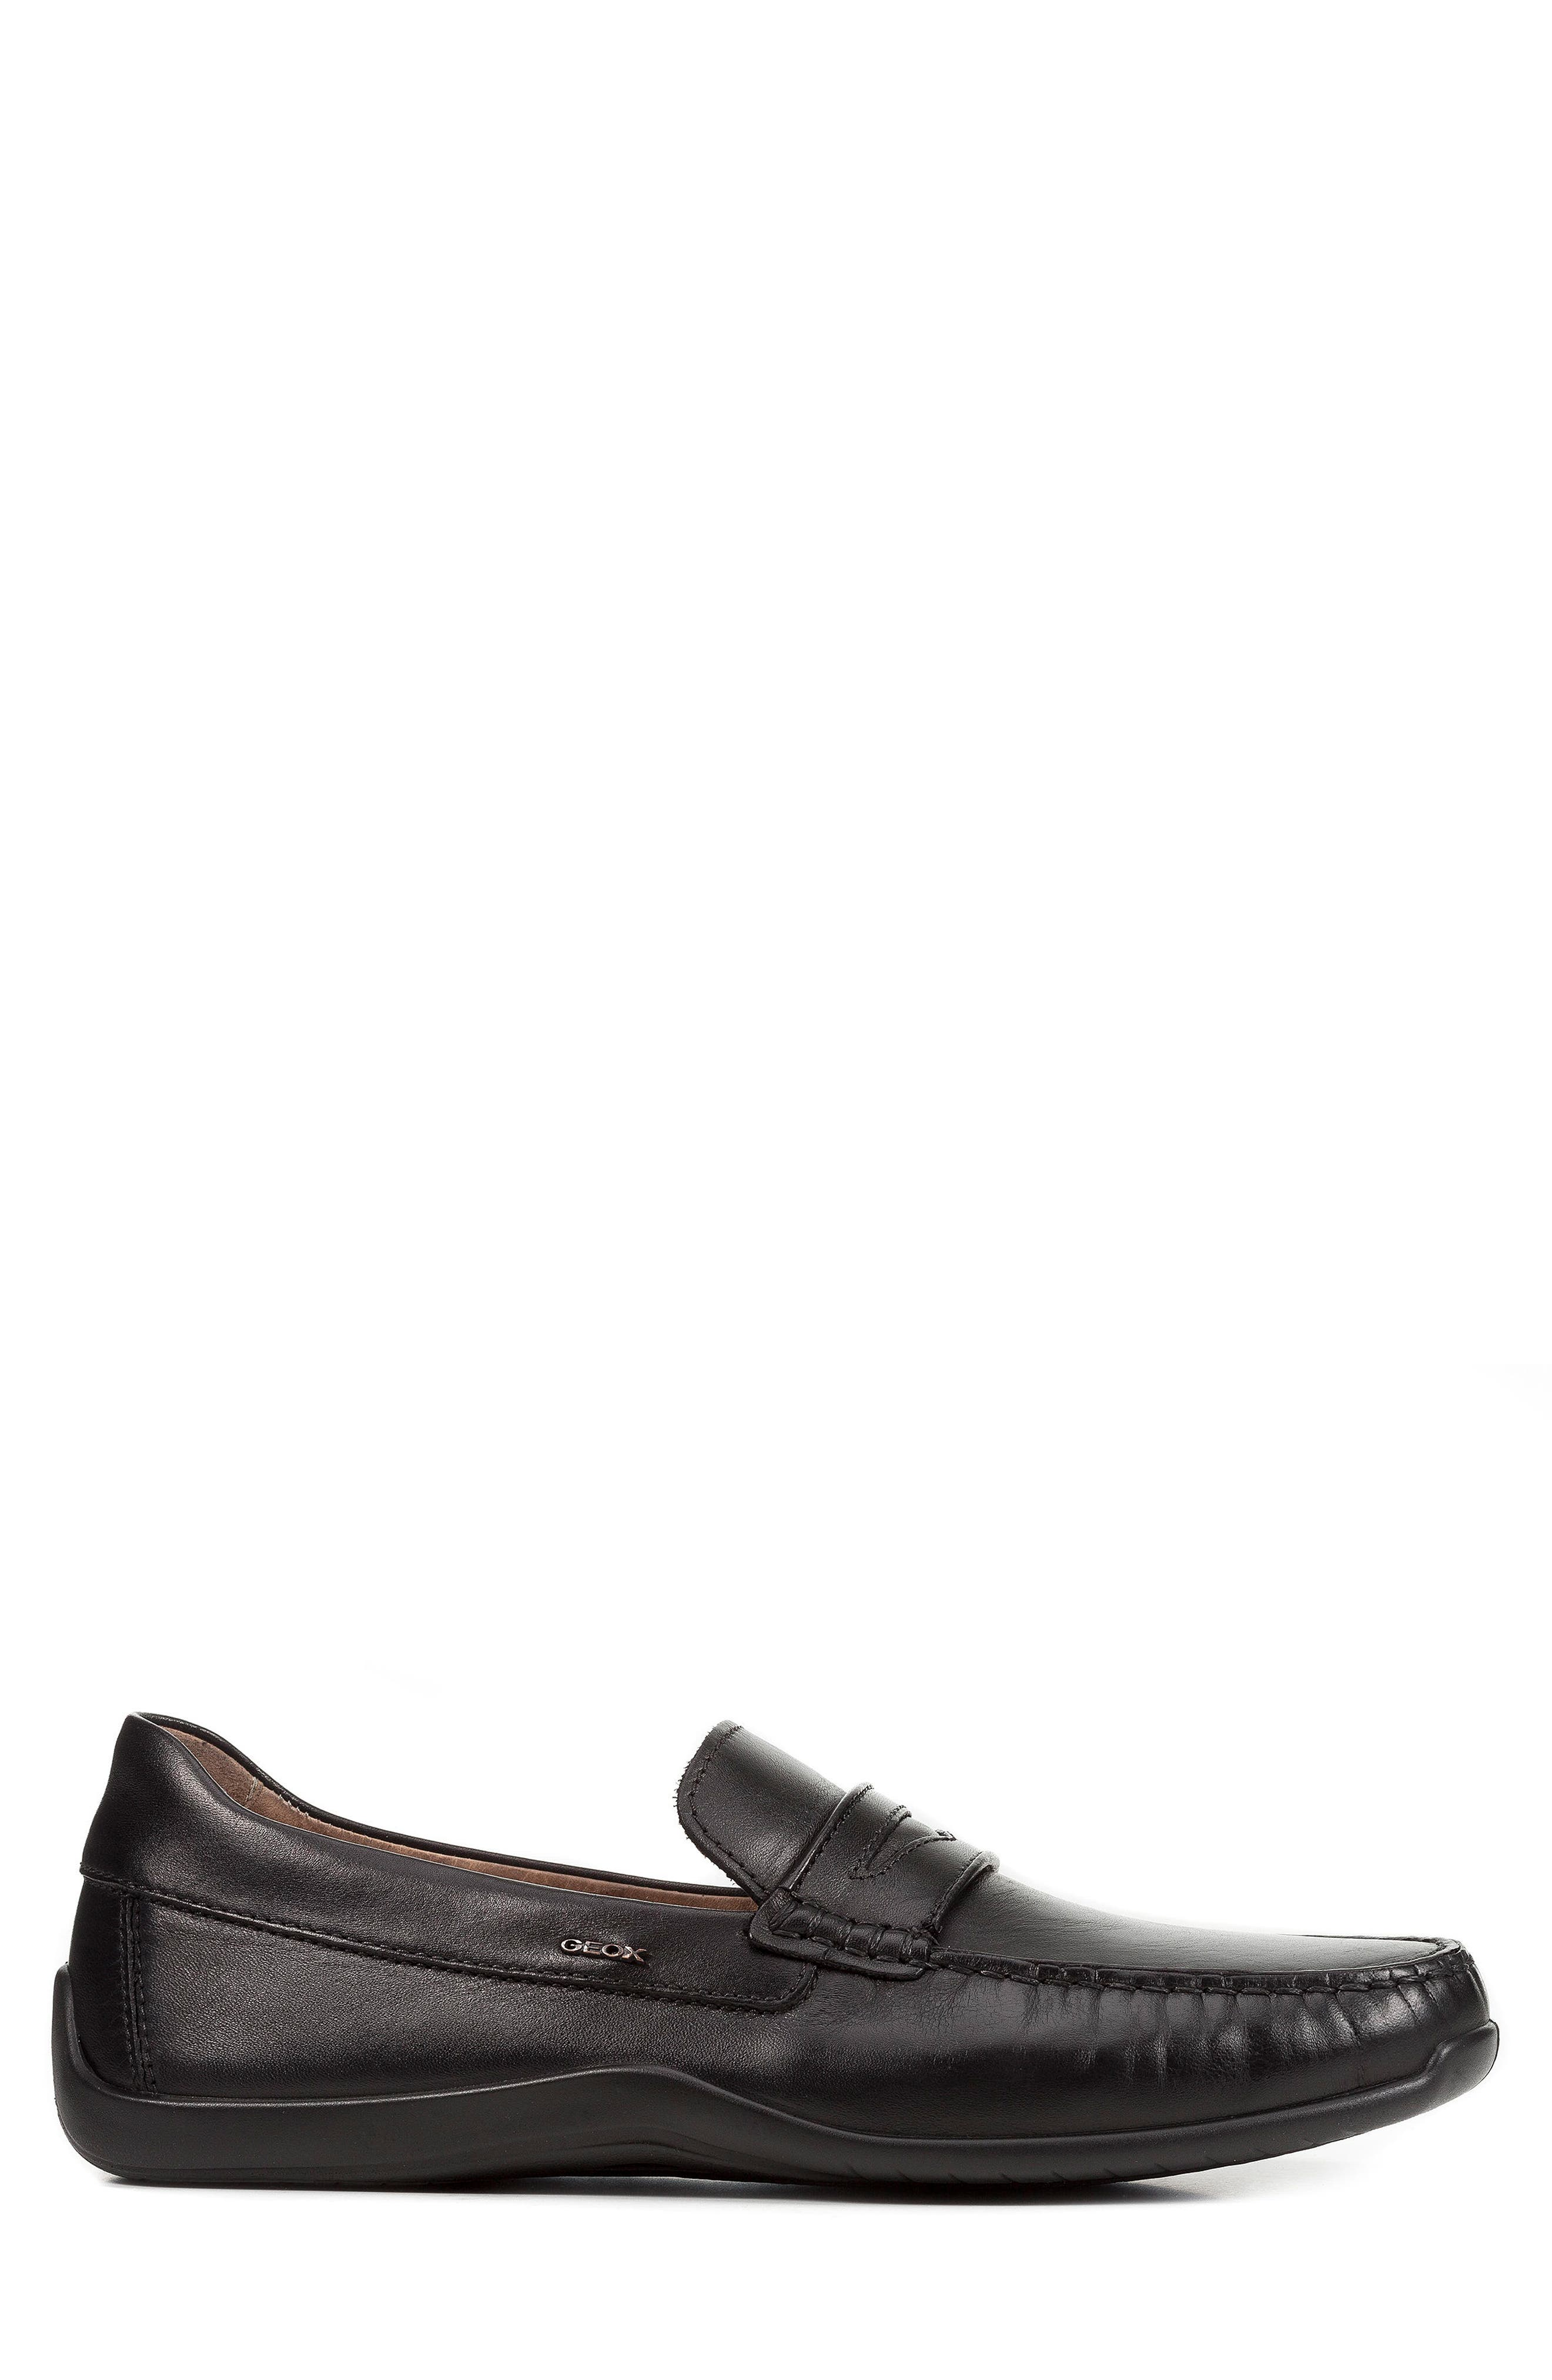 Xense Penny Loafer,                             Alternate thumbnail 5, color,                             Black Leather